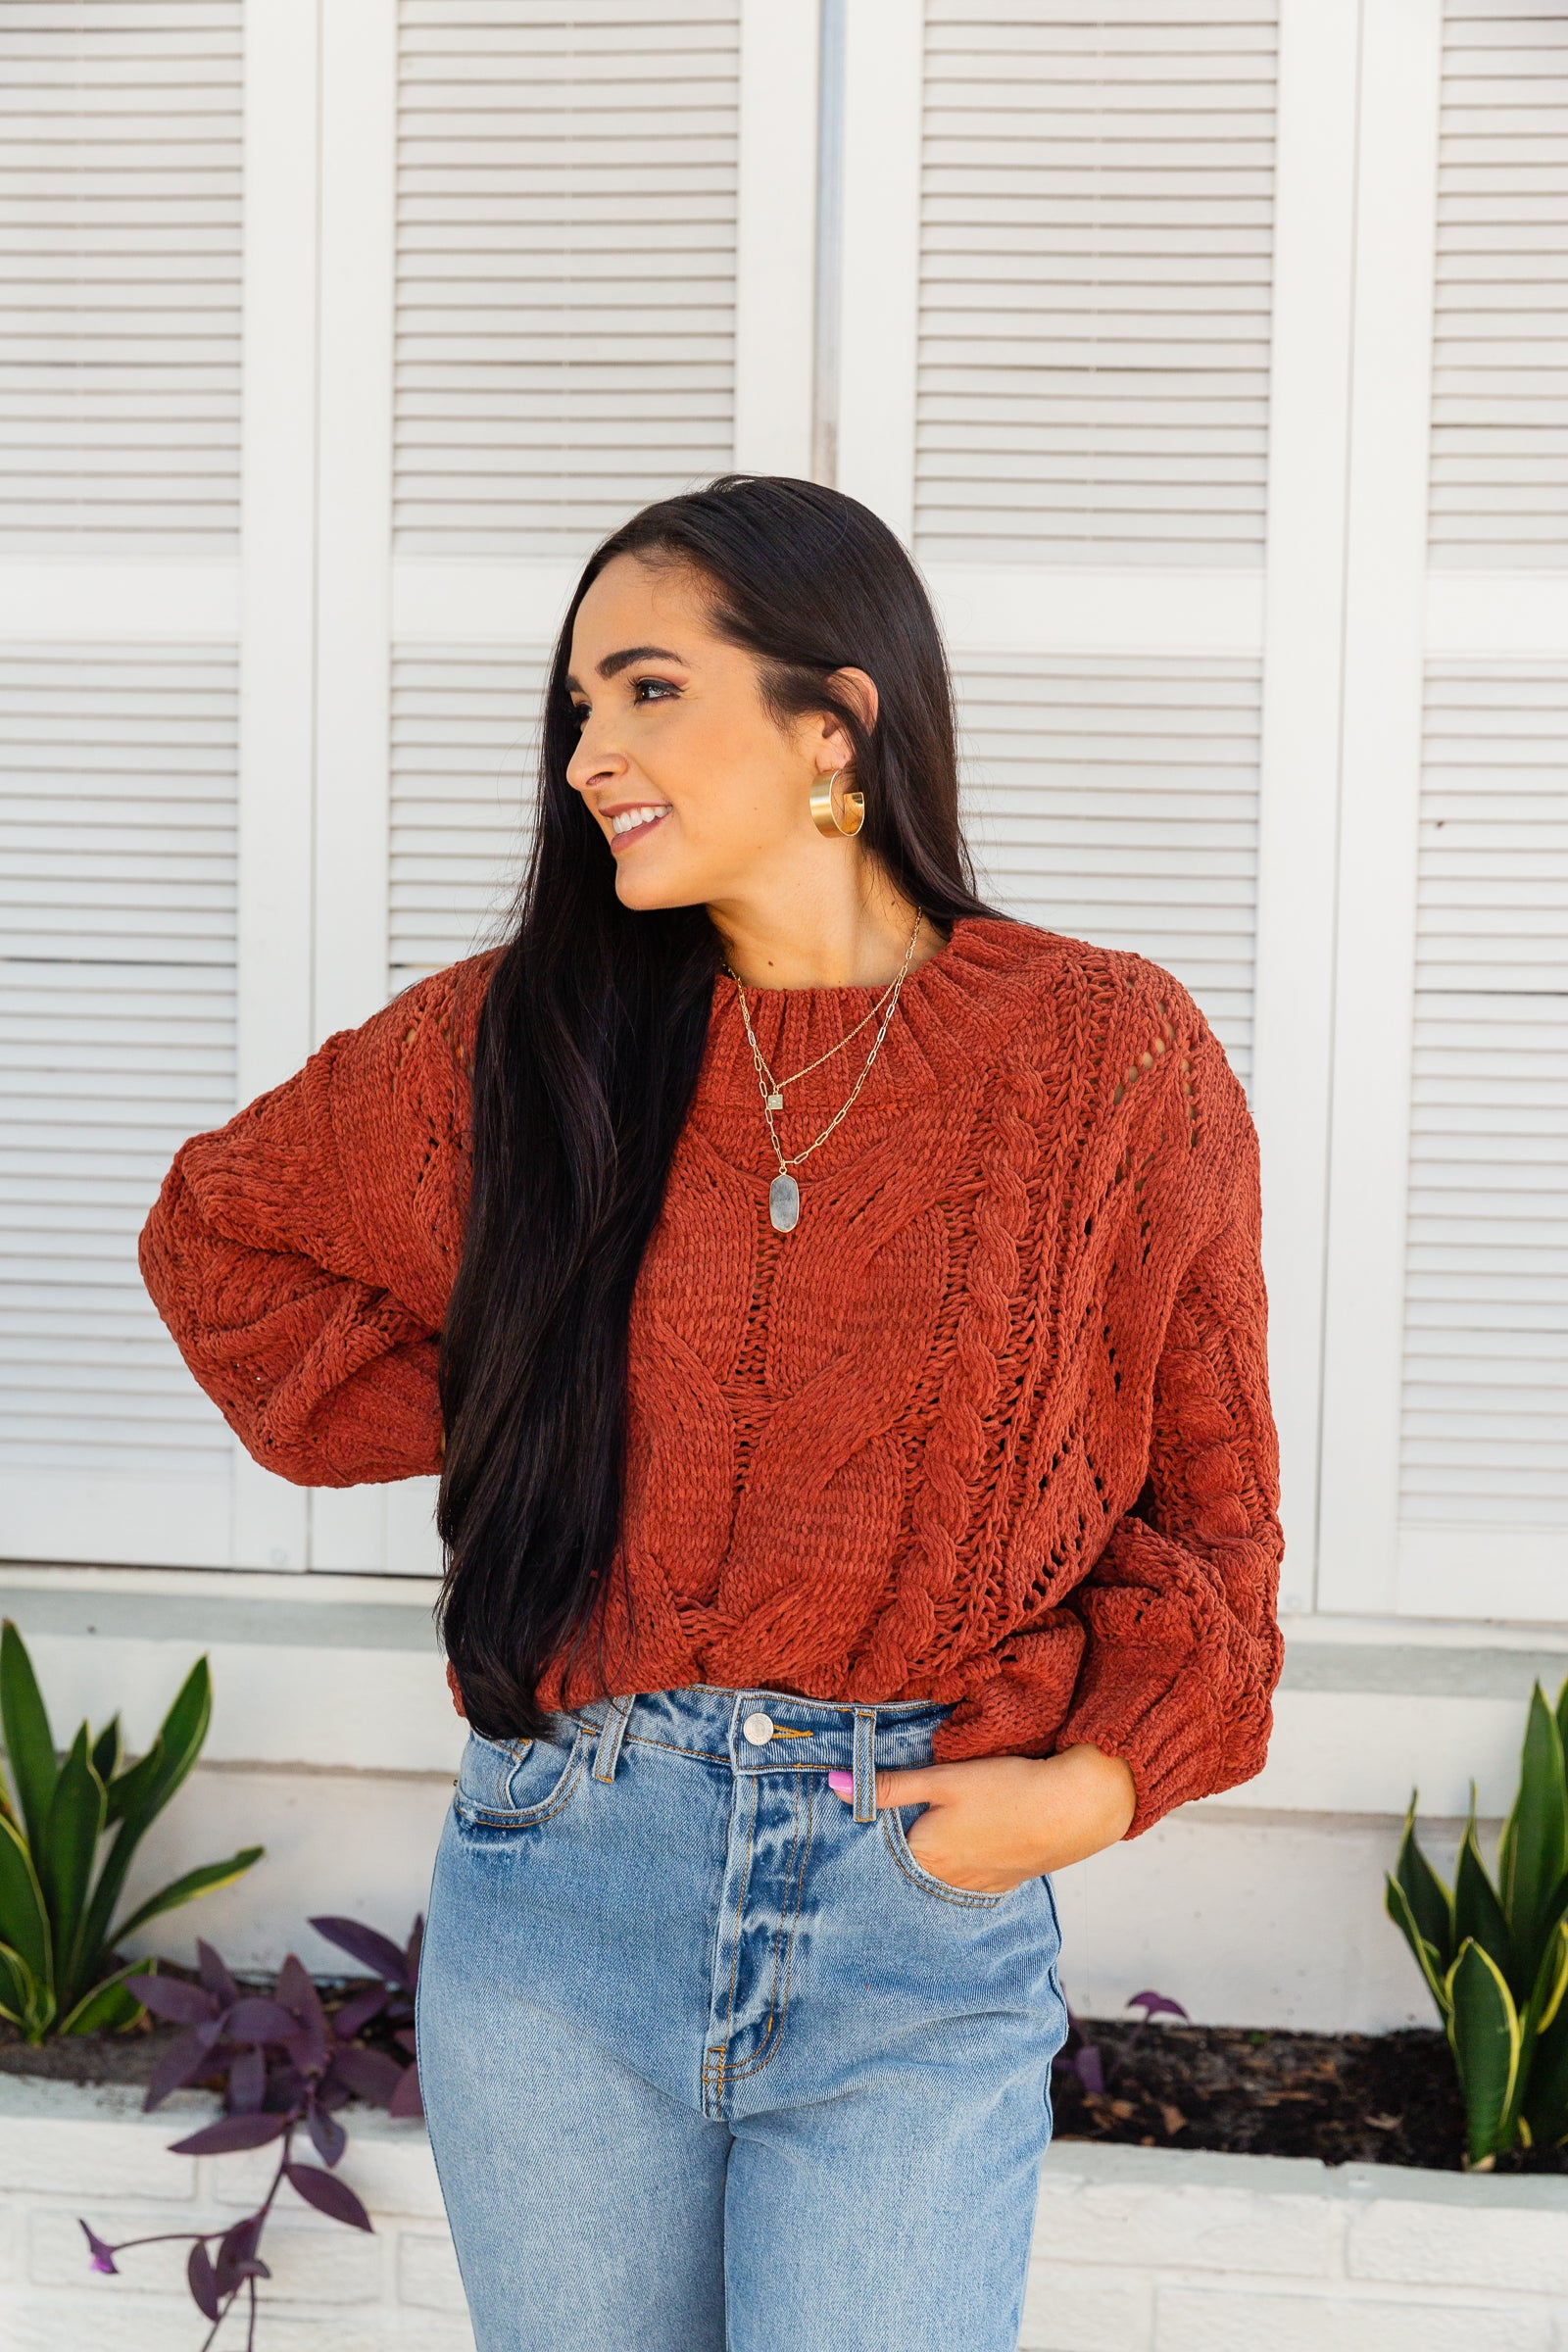 This cable knit sweater has long bishop sleeves that attach to a banded u-neckline on an oversized and relaxed bodice silhouette.